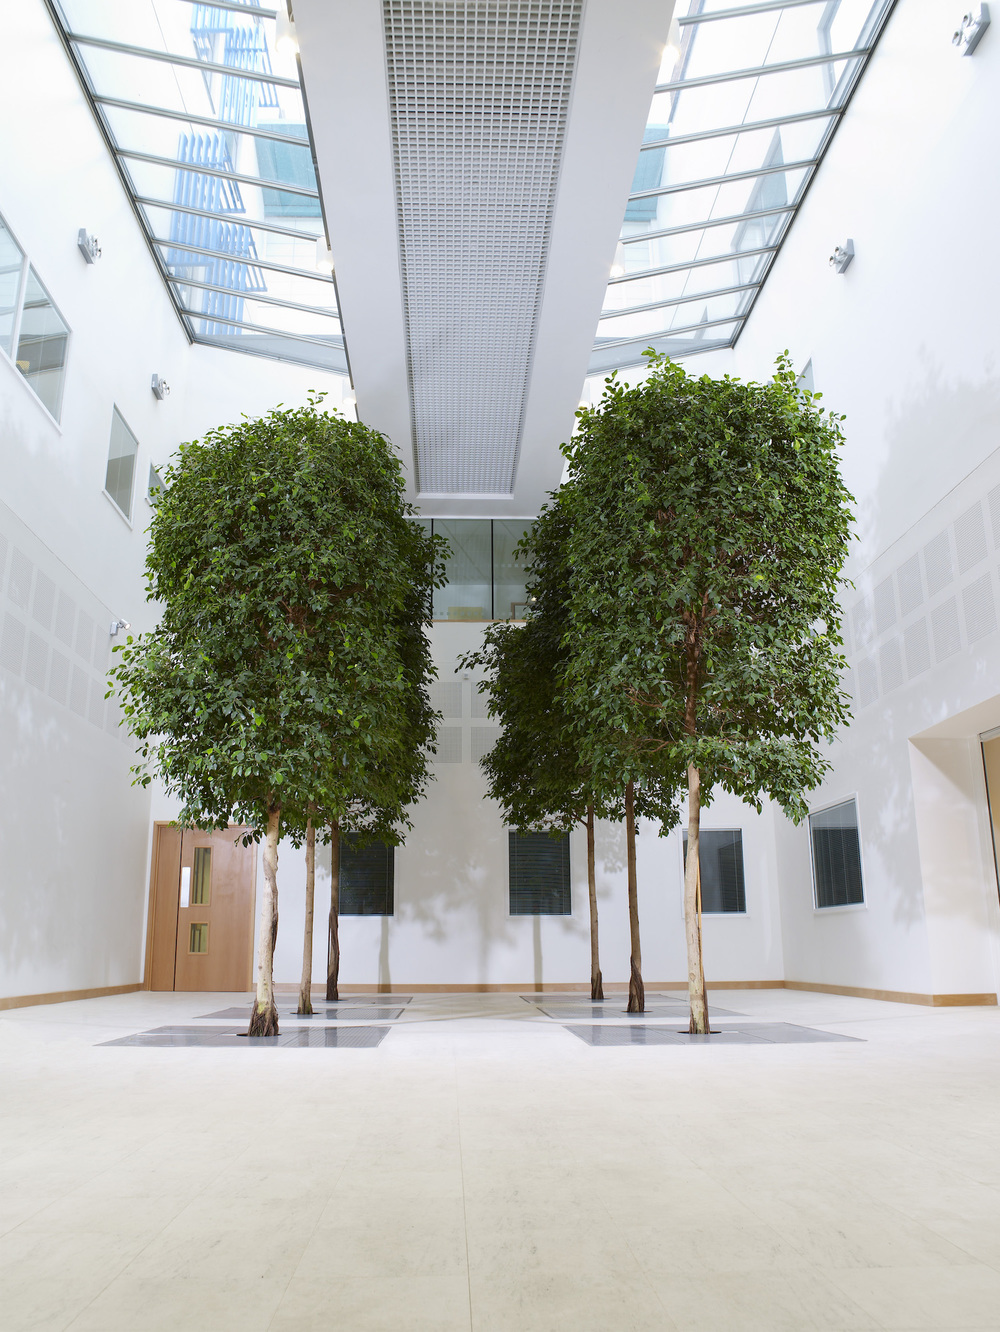 interior-trees-plantcare-bristol-cardiff-interiorscapes-eco-friendly-corporate-office-workspace-1